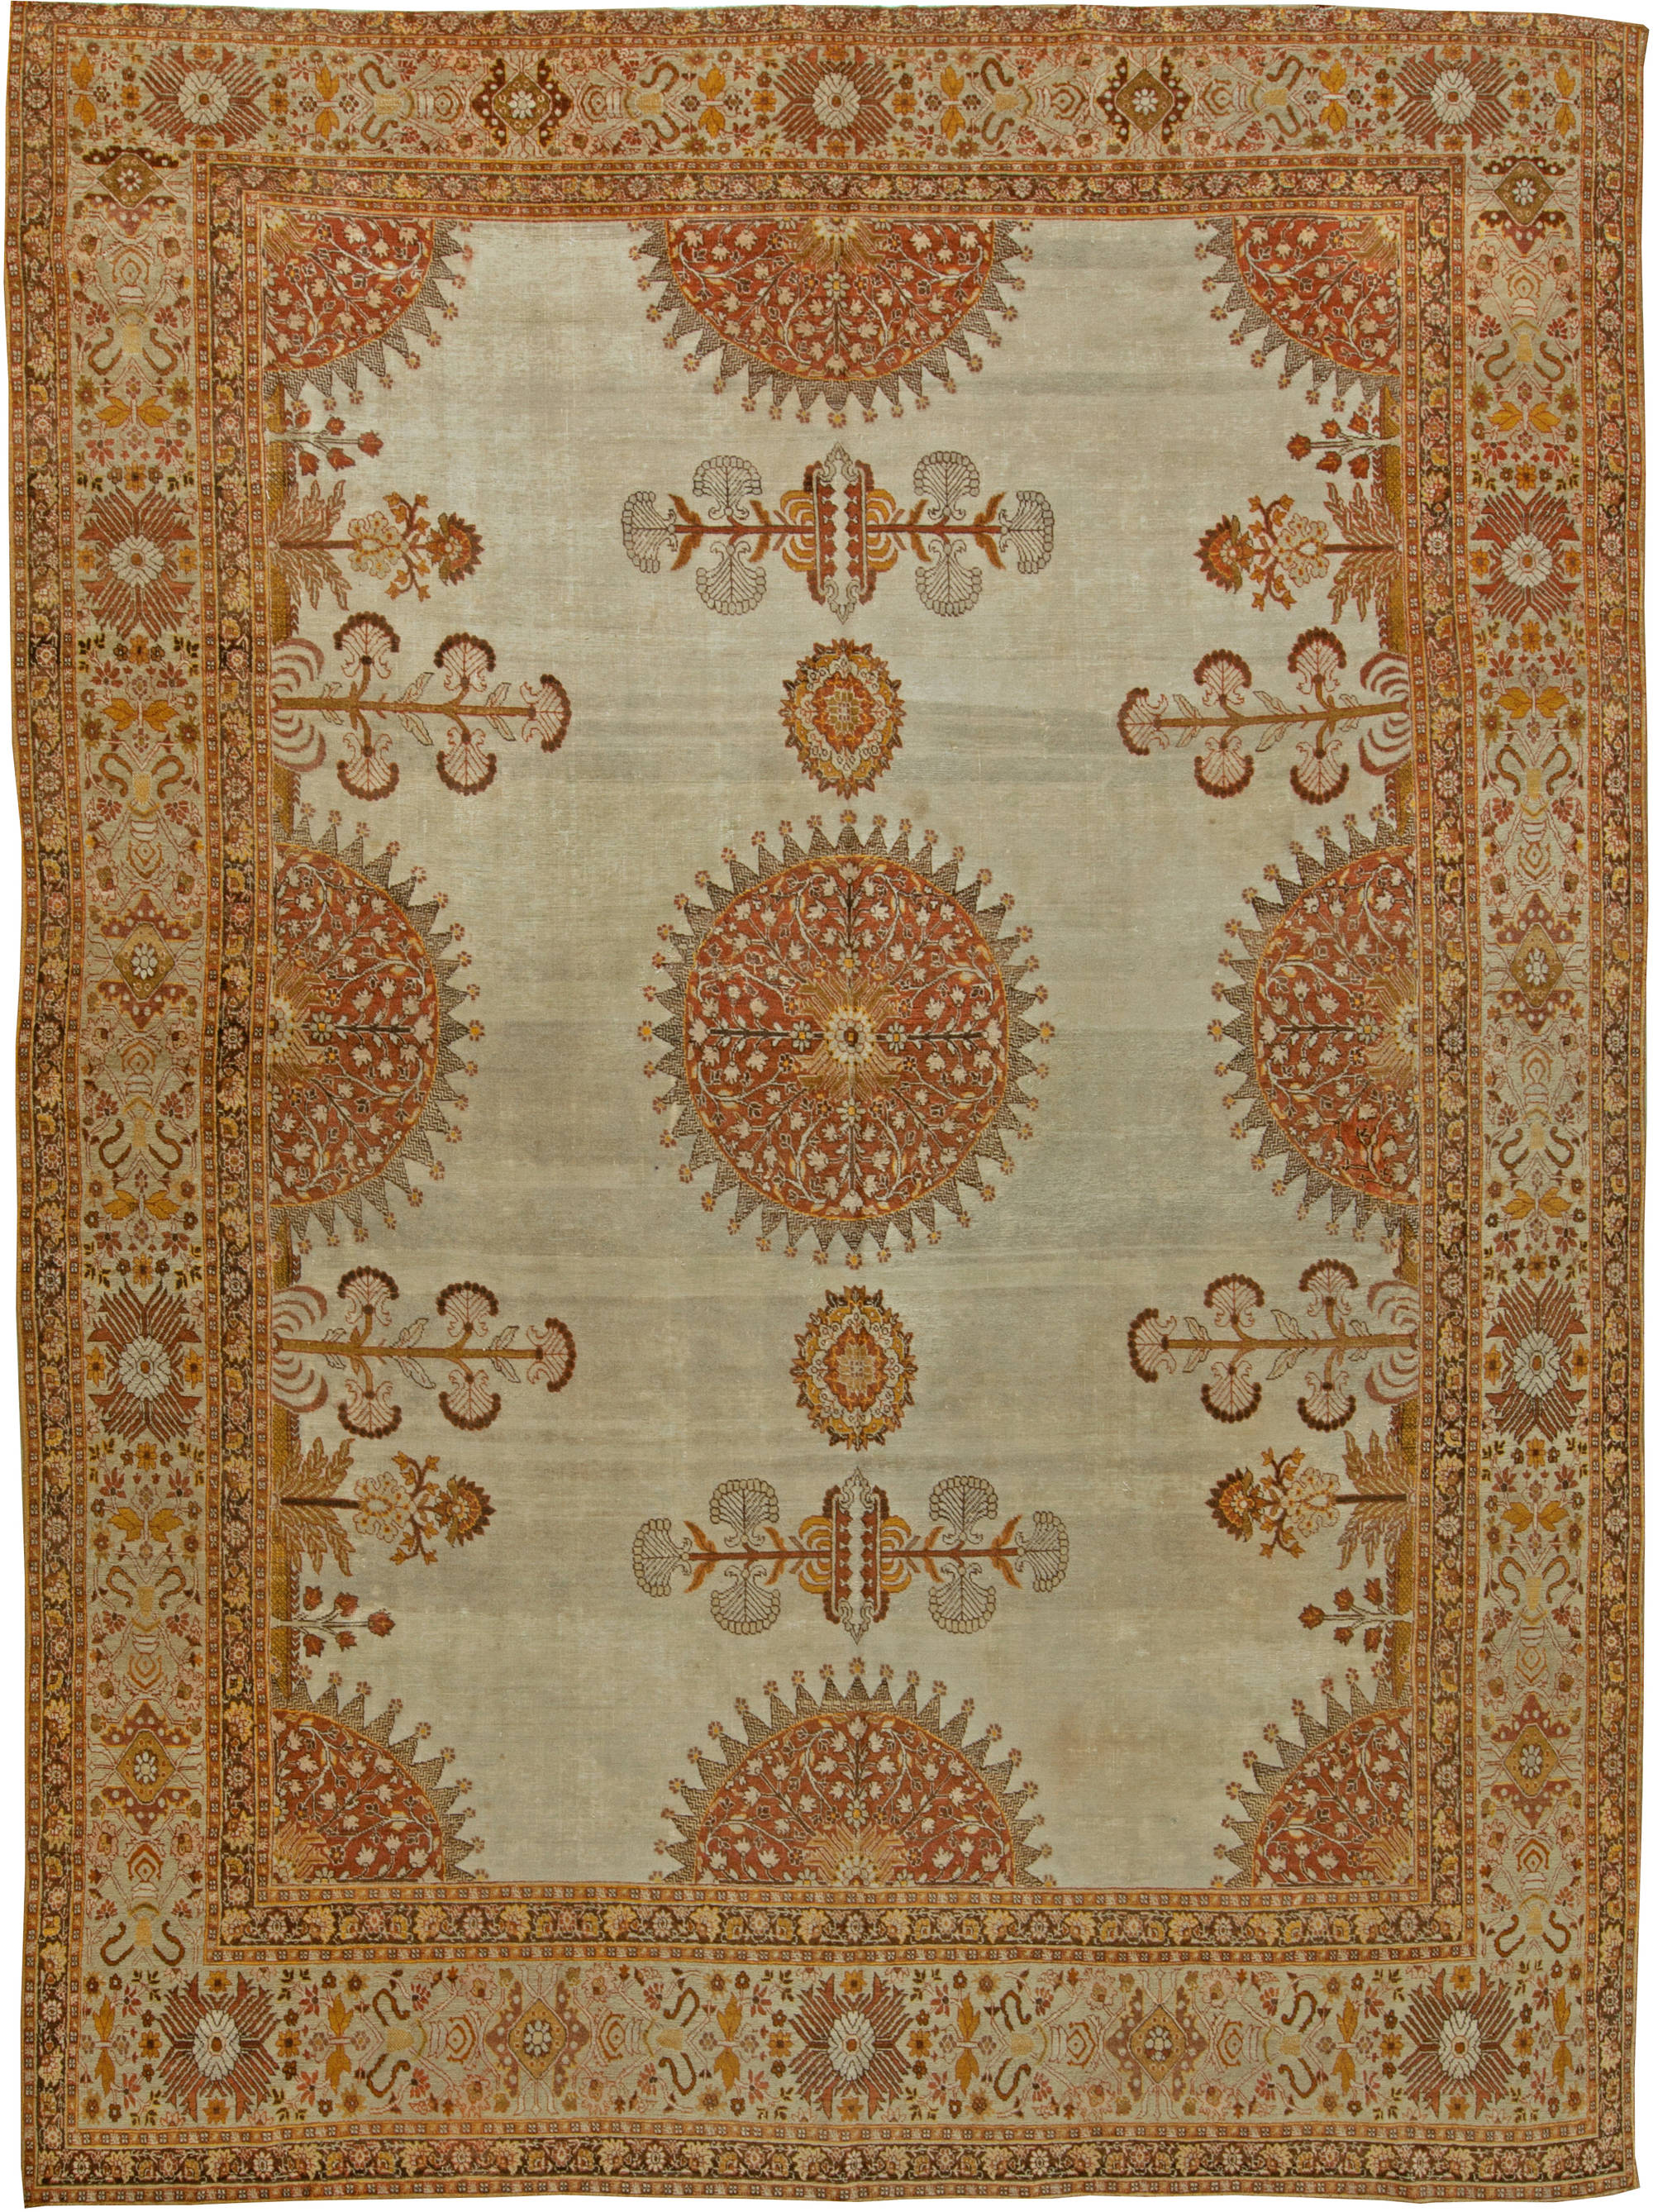 Antique Persian Tabriz Rug Bb6098 By Dlb